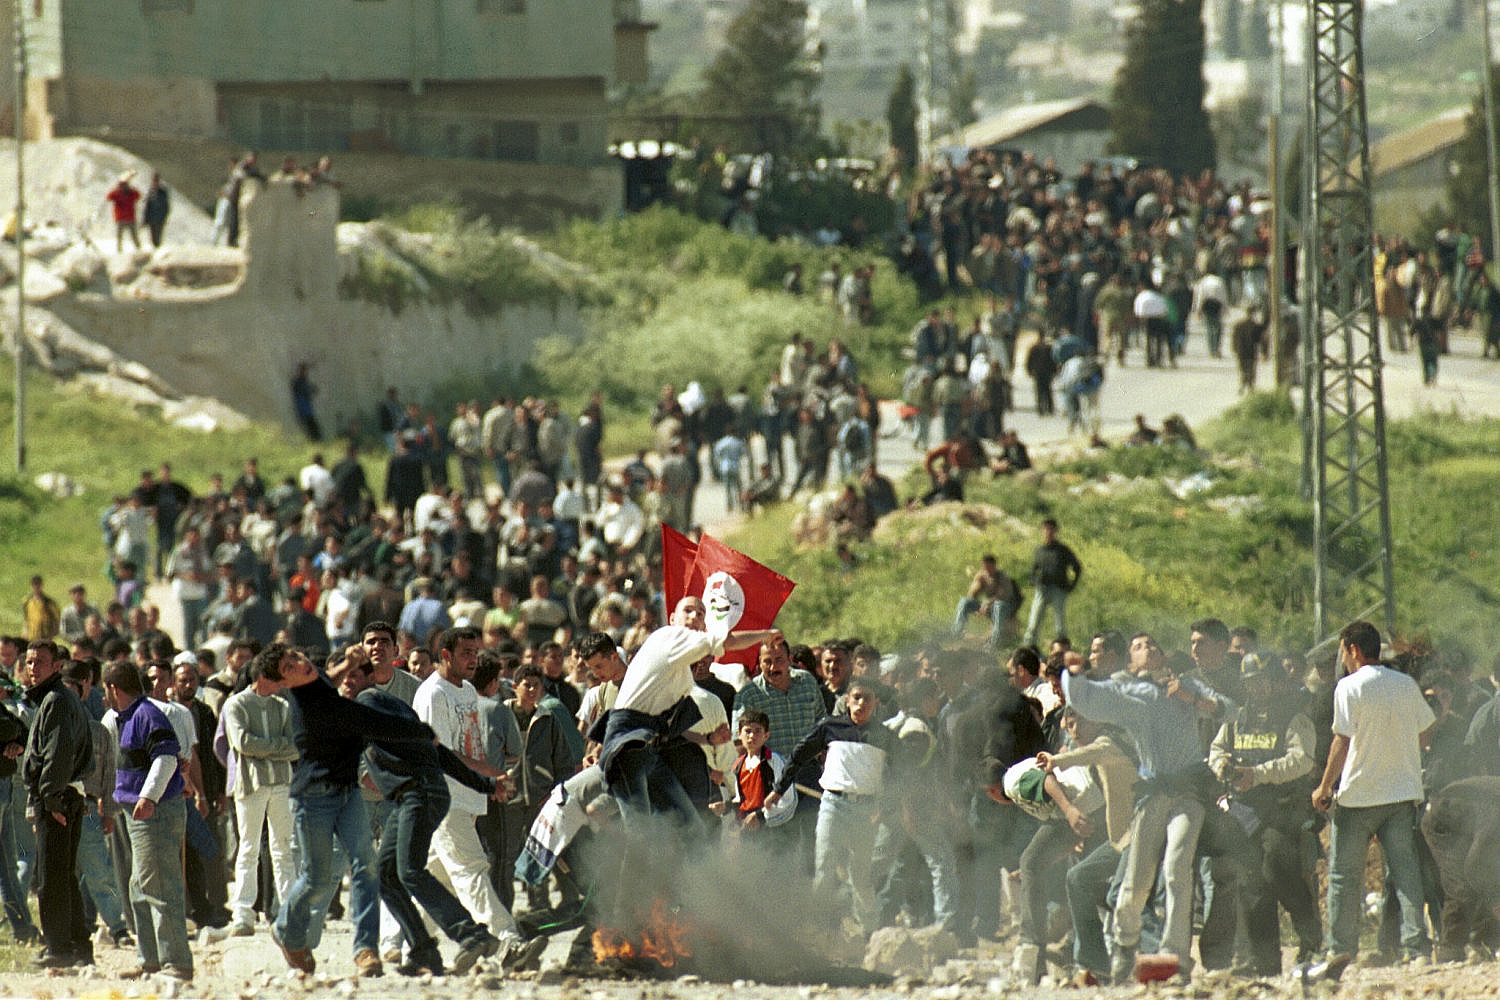 Palestinians throw rocks at a demonstration during the Second Intifada, March 25, 2001. (Nati Shohat/Flash90)